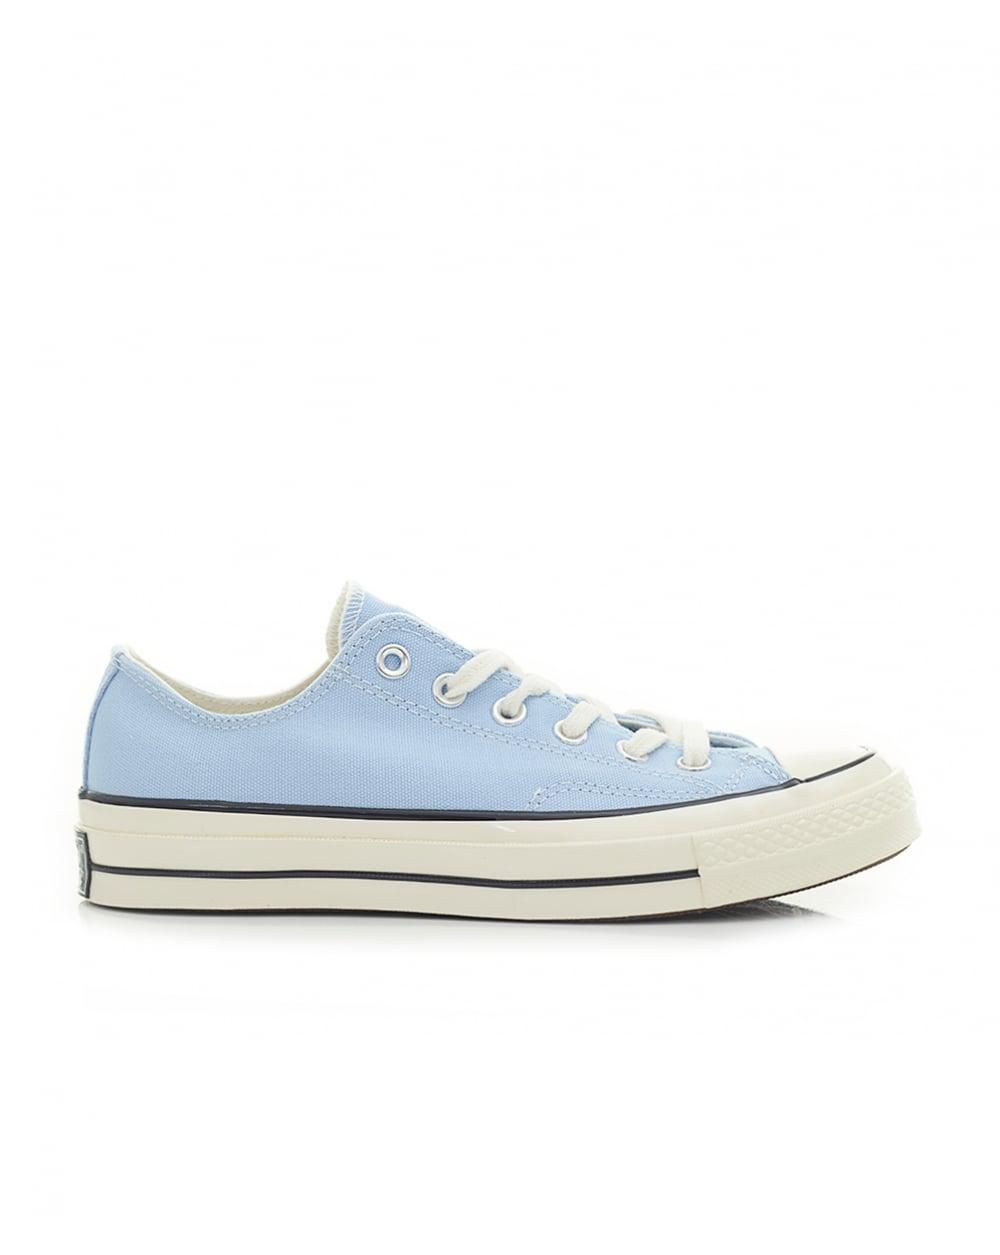 Converse Chuck 70 s Low Trainers in Blue for Men - Save 46% - Lyst 6c1498ac6